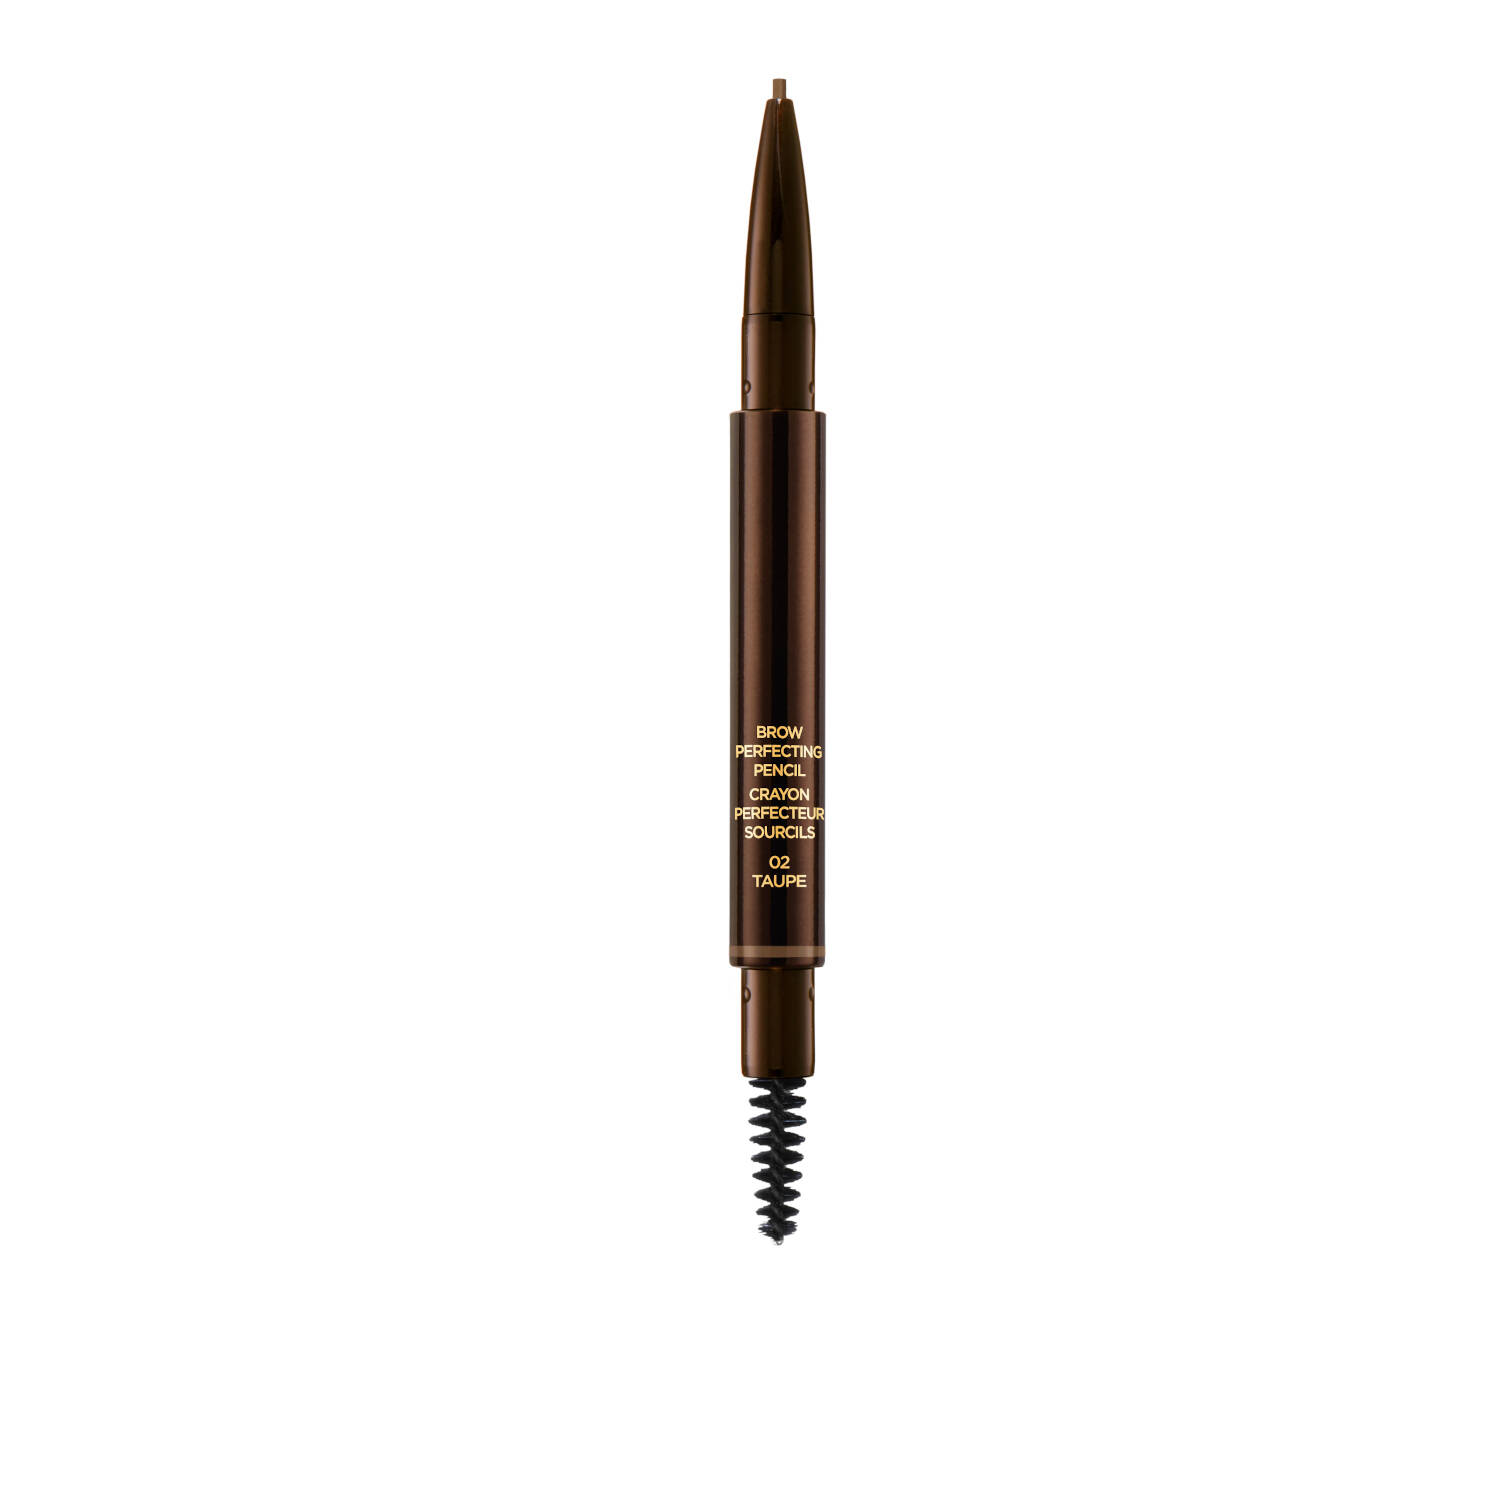 TOM FORD Brow Perfecting Pencil - 03 Taupe (03 | 0,07g) Make Up, Augen, Augenbrauen, Eyes von TOM FORD